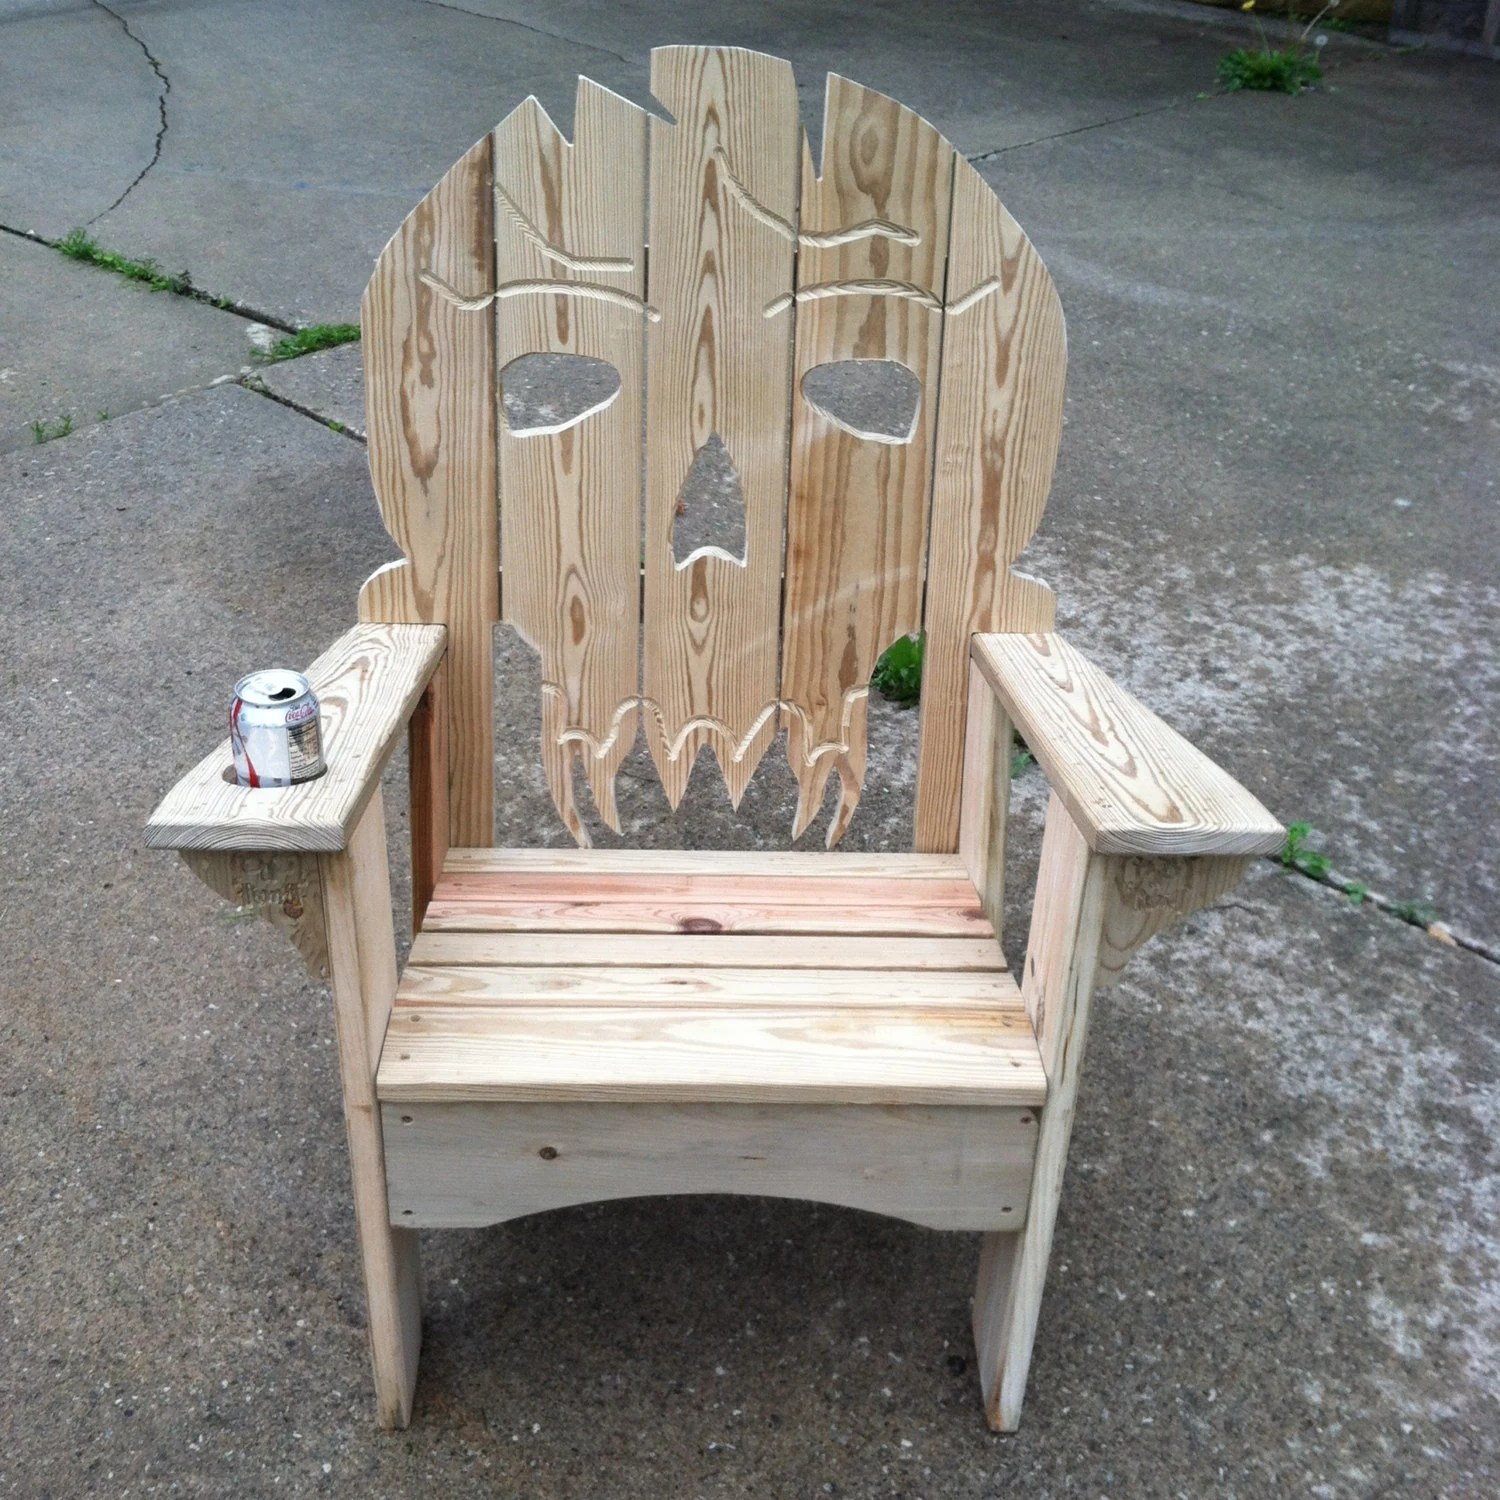 skull chair cheap dining room chairs ultimate adirondack etsy image 0